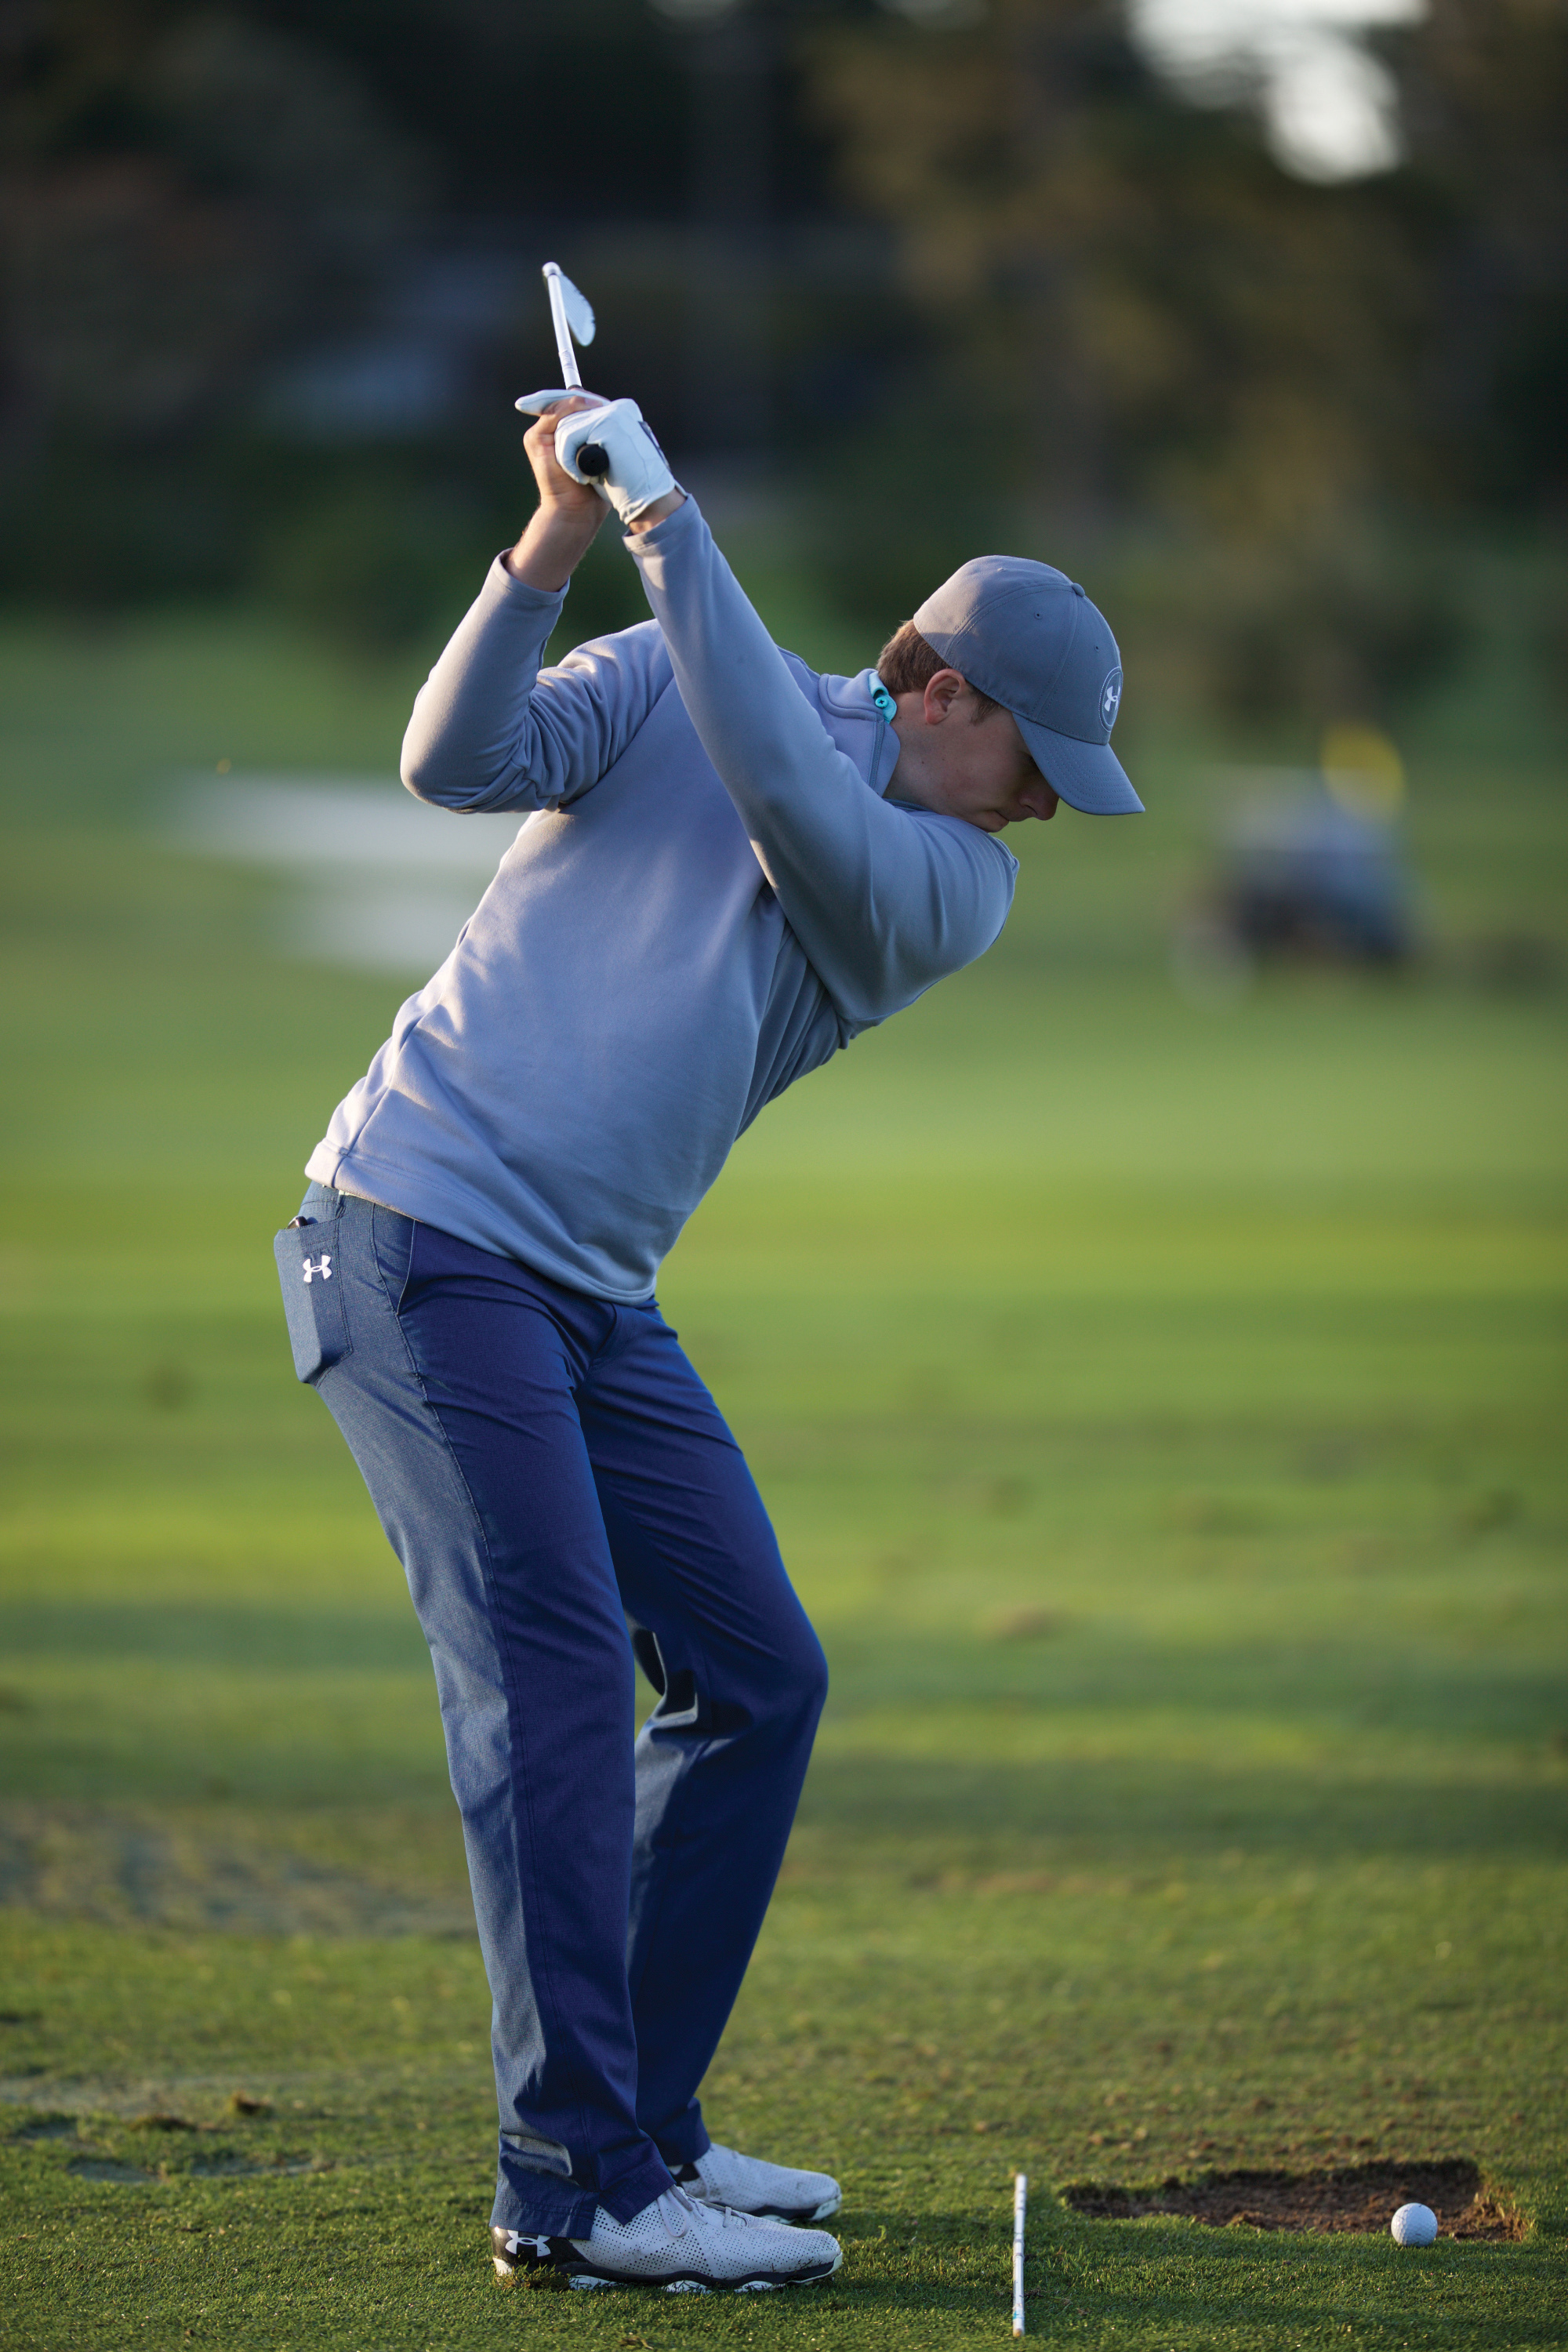 Jordan Spieth Swing Sequence Analysis Californiagolf